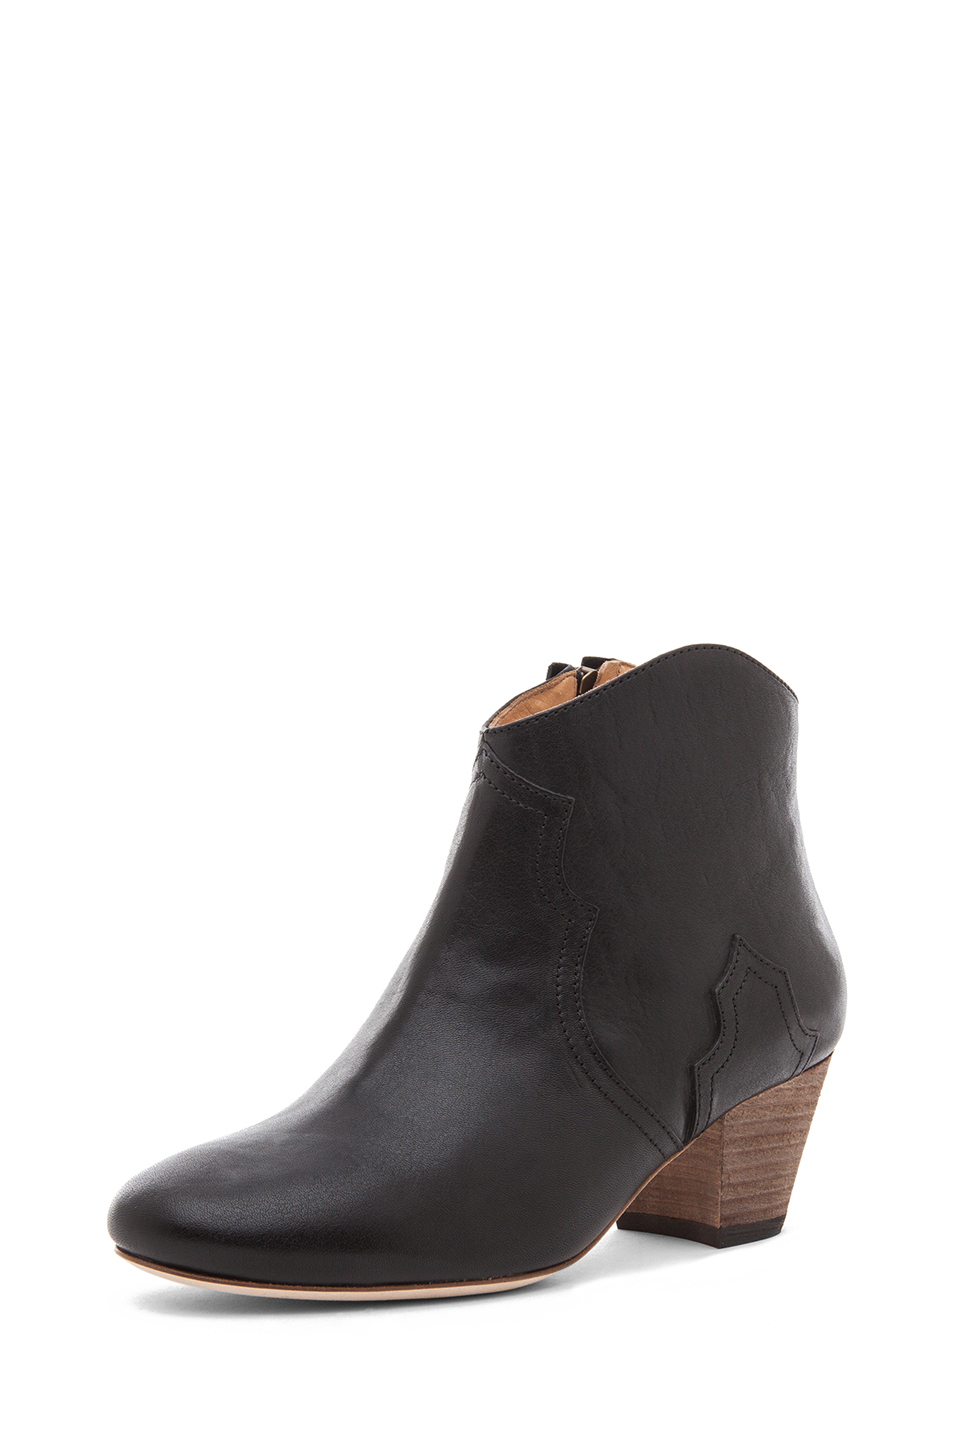 Isabel Marant|Dicker Calfskin Leather Boots in Black